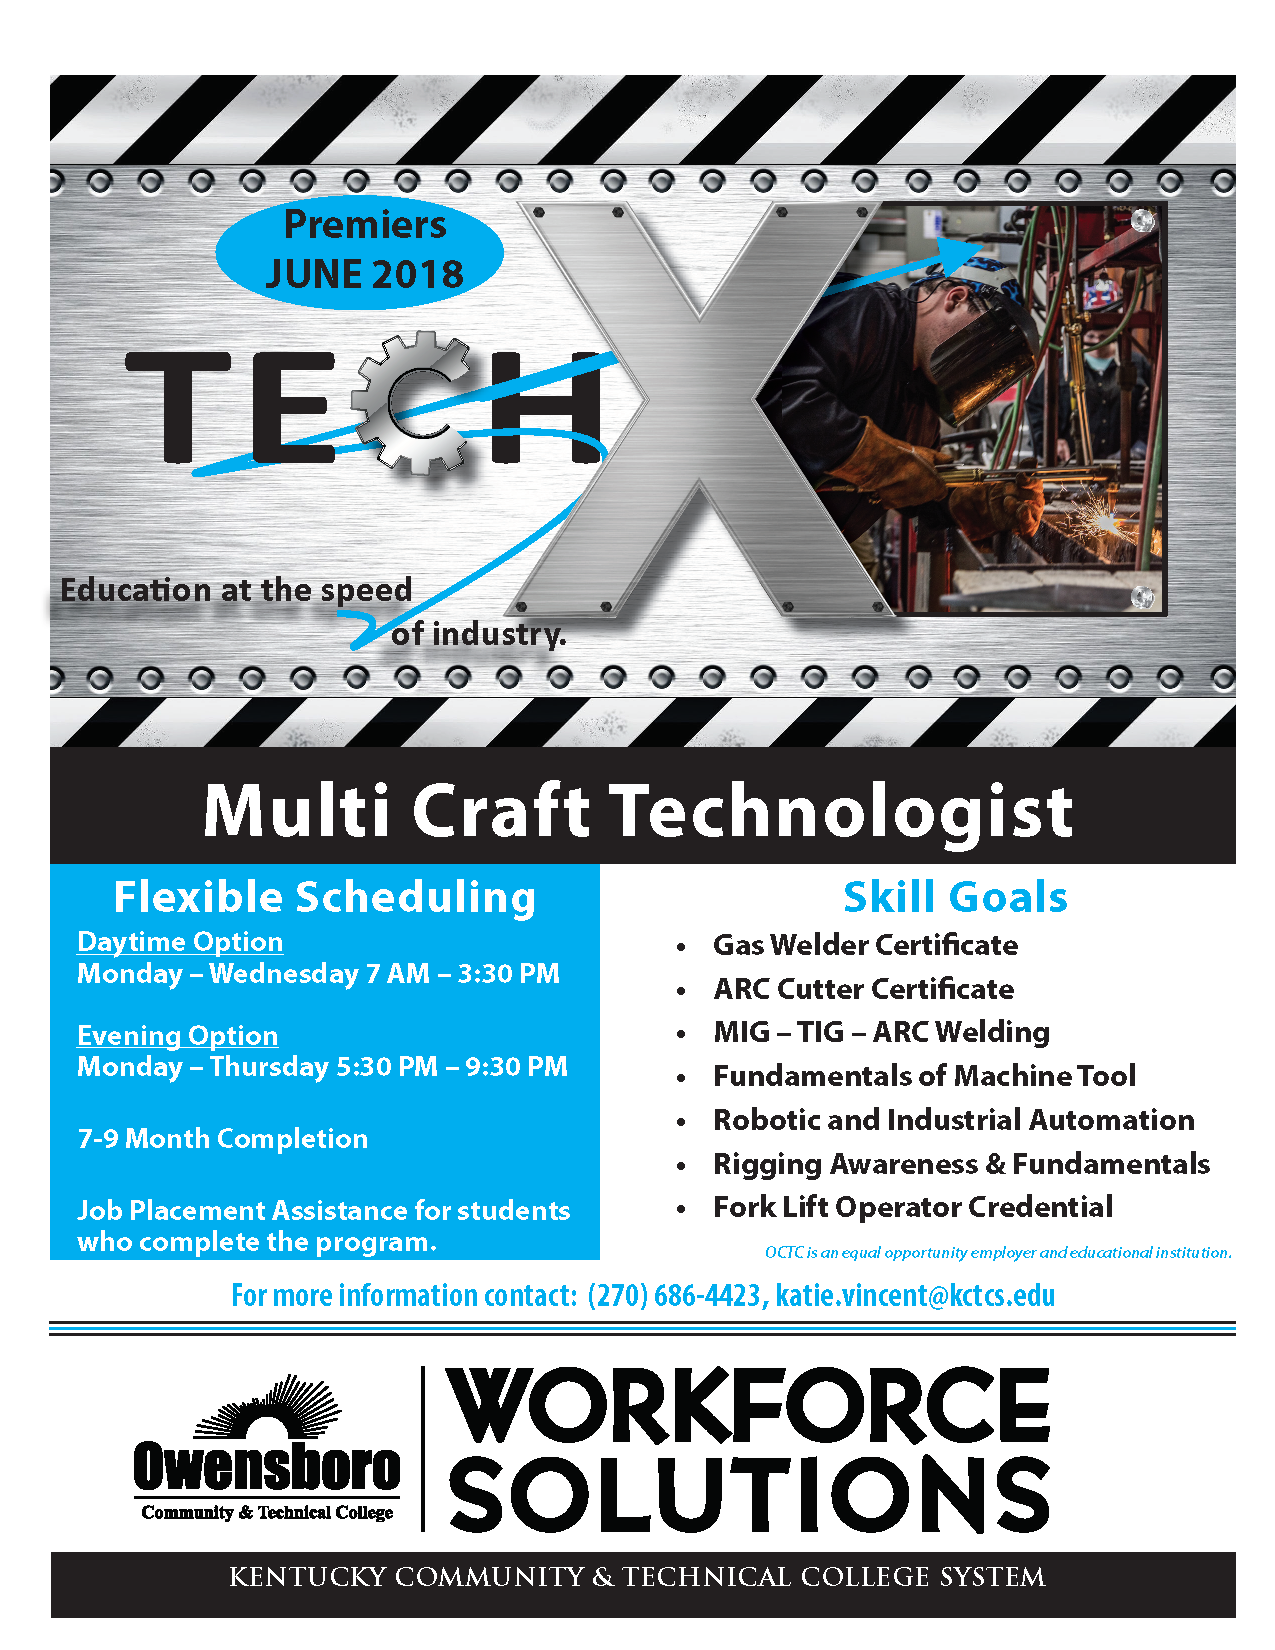 flyer promoting the Tech X program